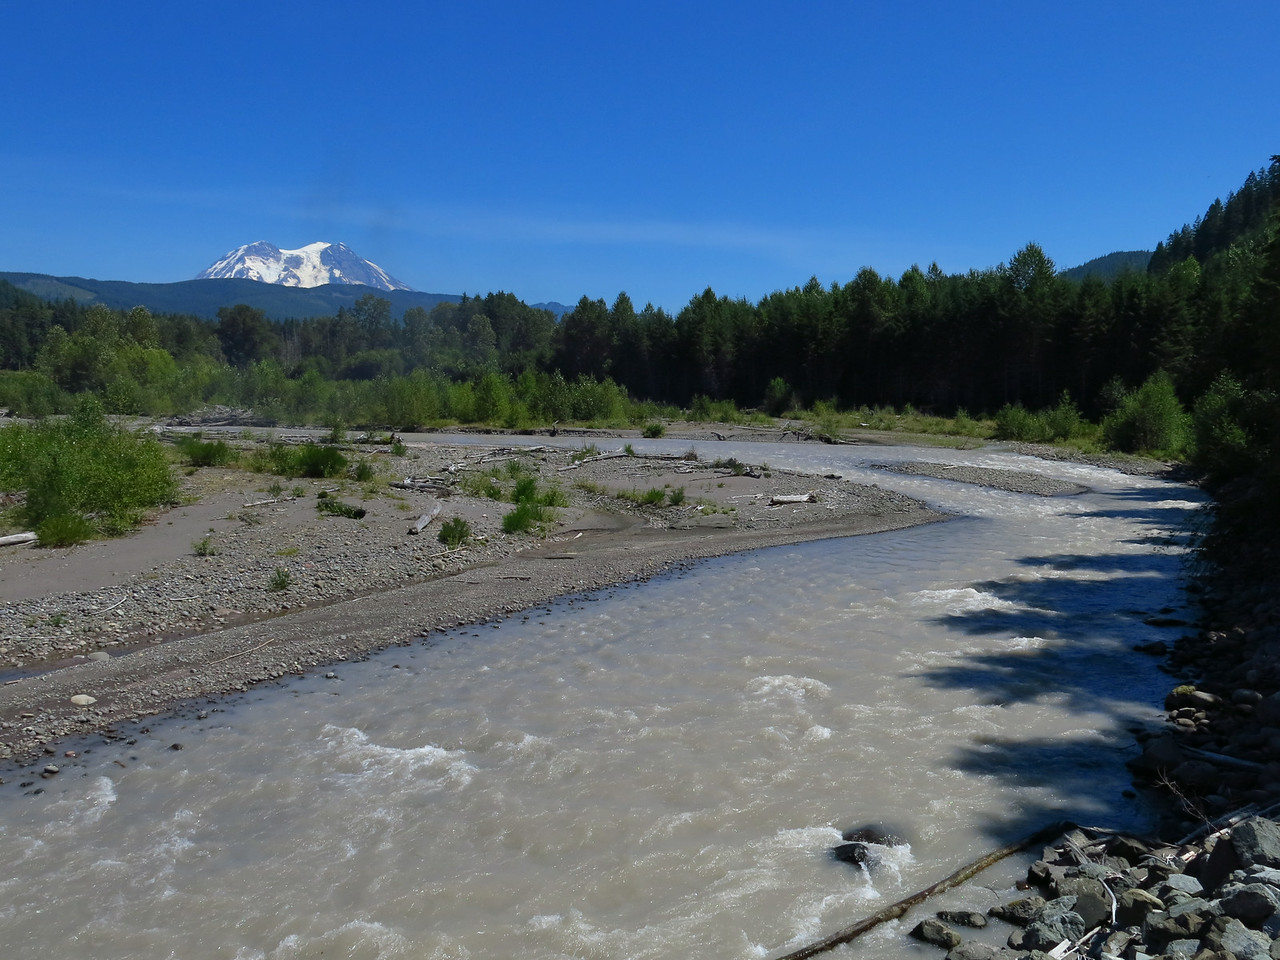 Mineral Creek and Mount Rainier in the distance